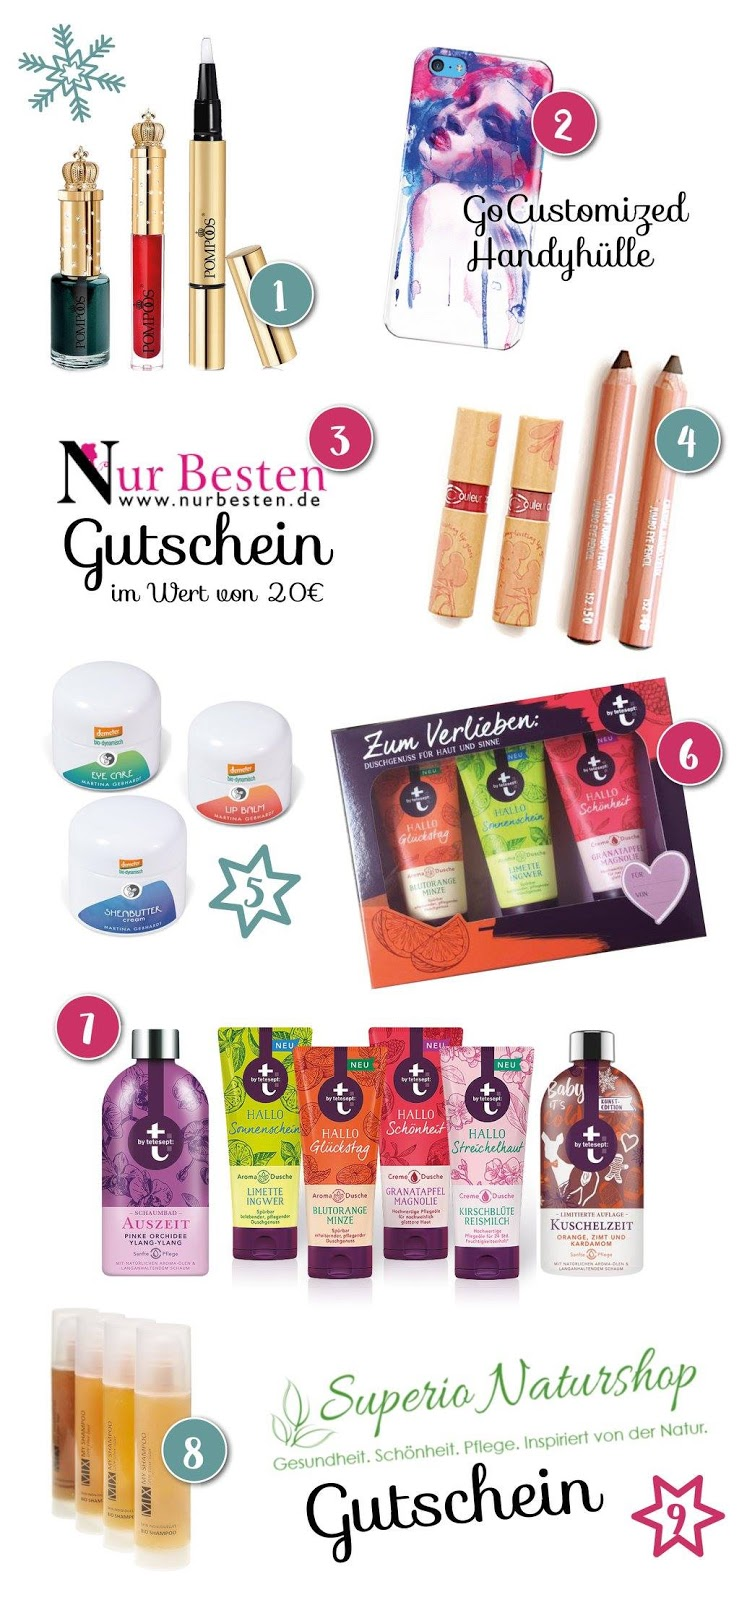 Beautyjunkies Blogger Adventskalender 2016 Gewinnuebersicht